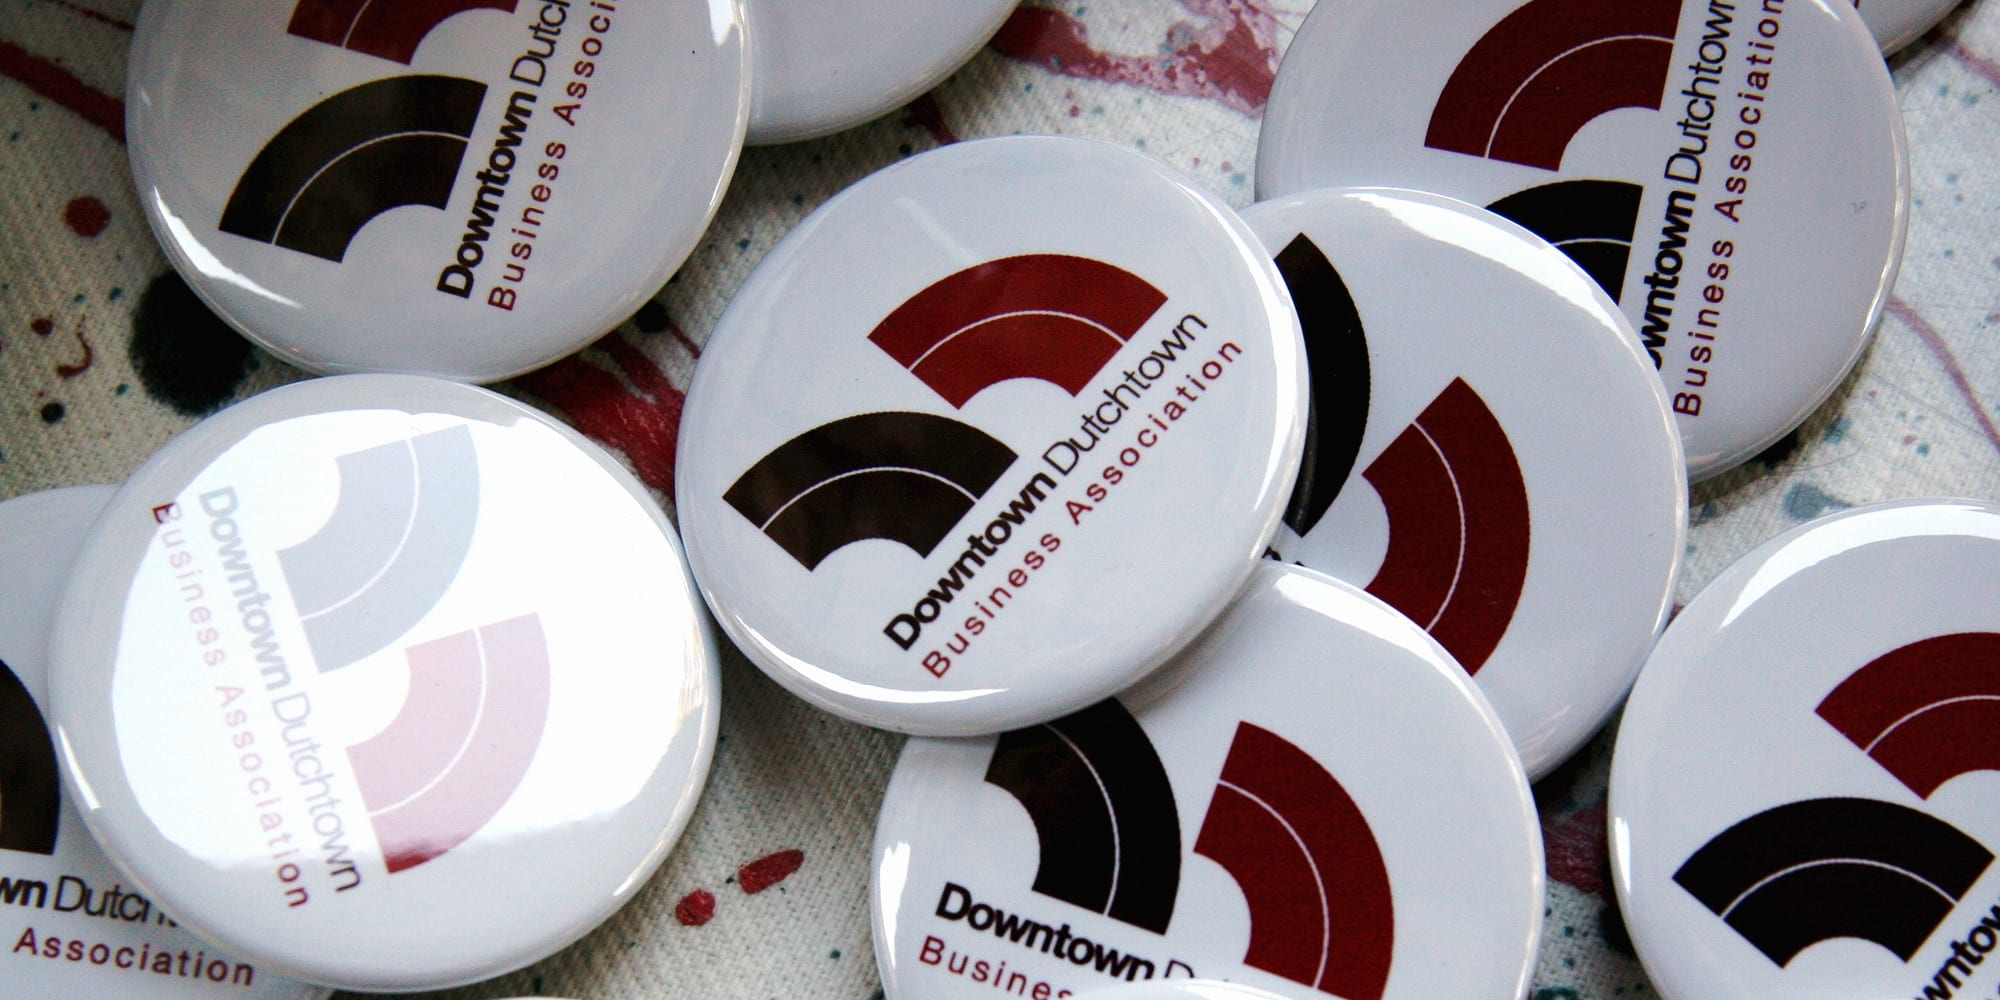 DT2 buttons. Photo by Tom Lampe.